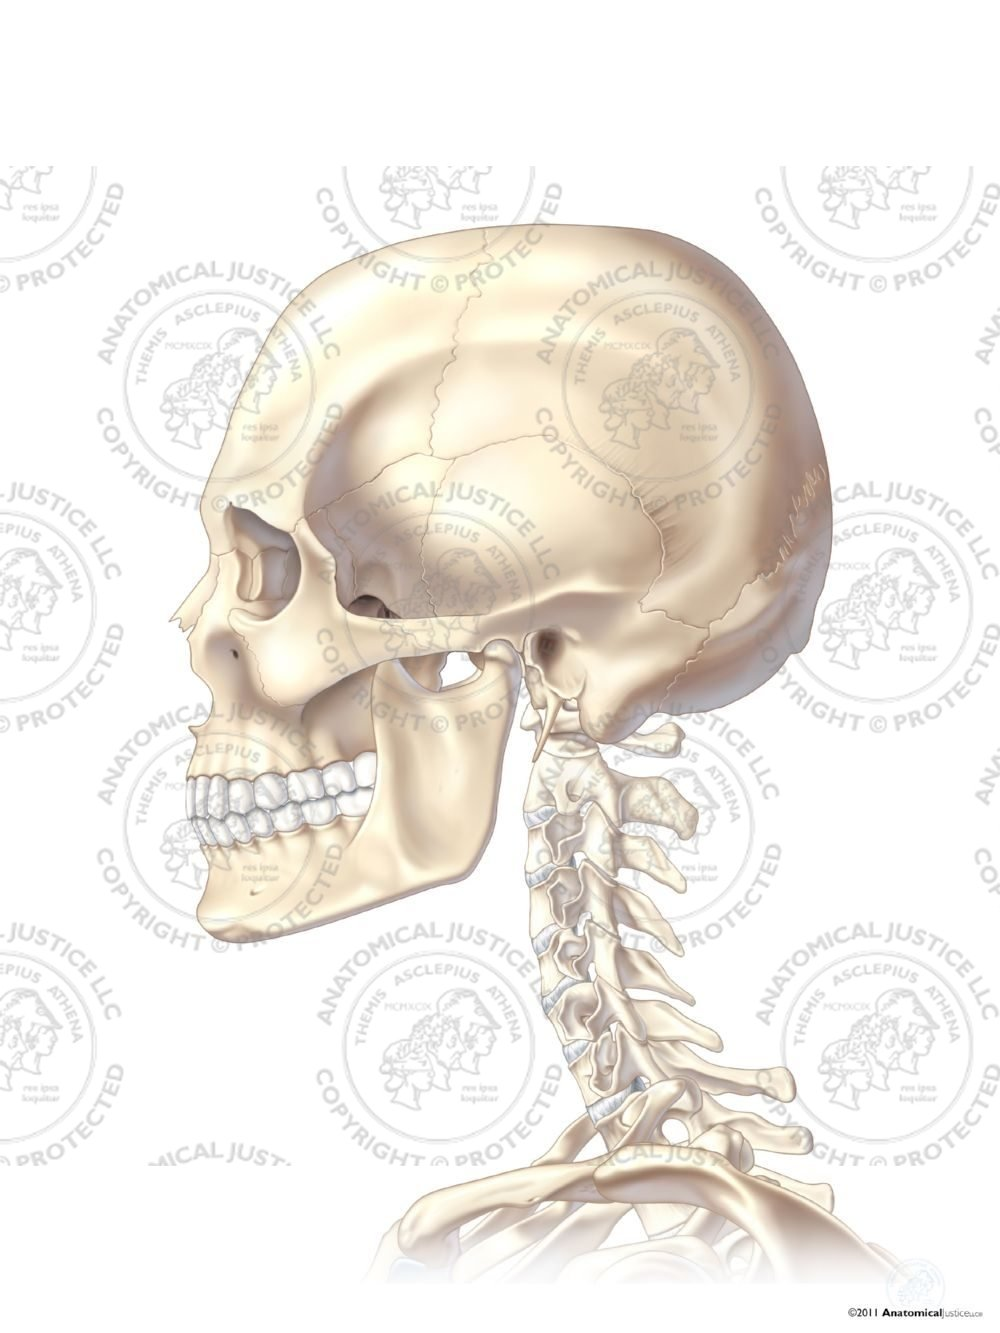 Left Lateral Skull And Neck No Text Anatomical Justice